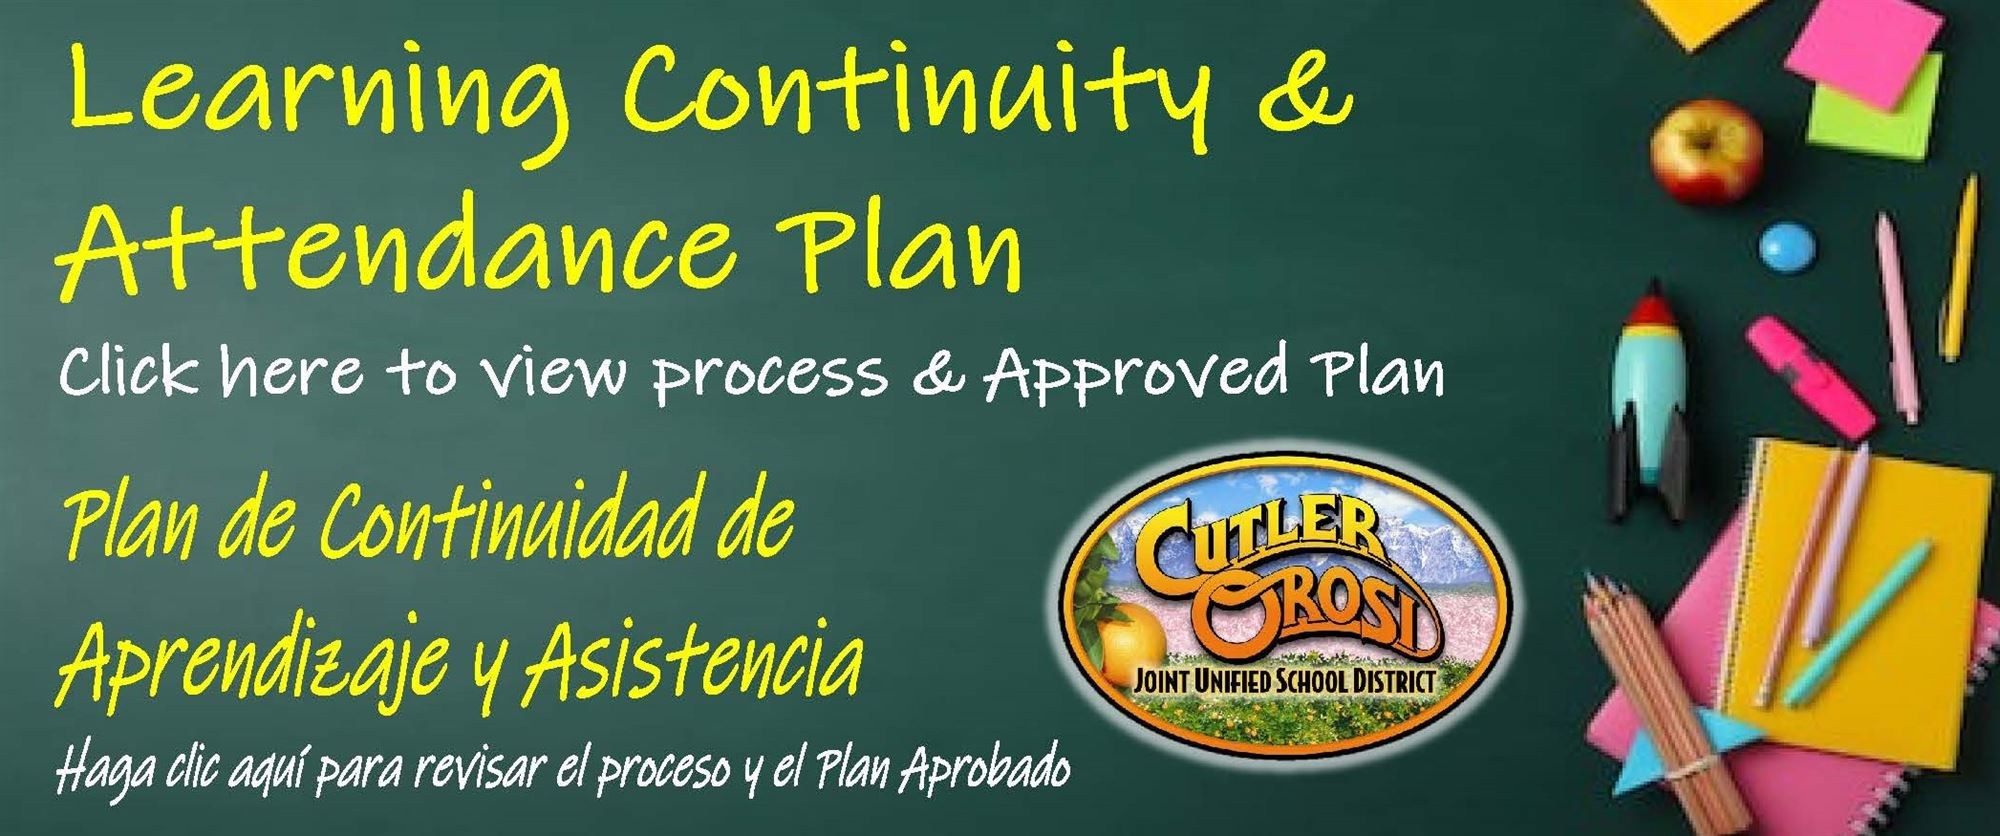 Learning Continuity and Attendance Plane Page Cover Image